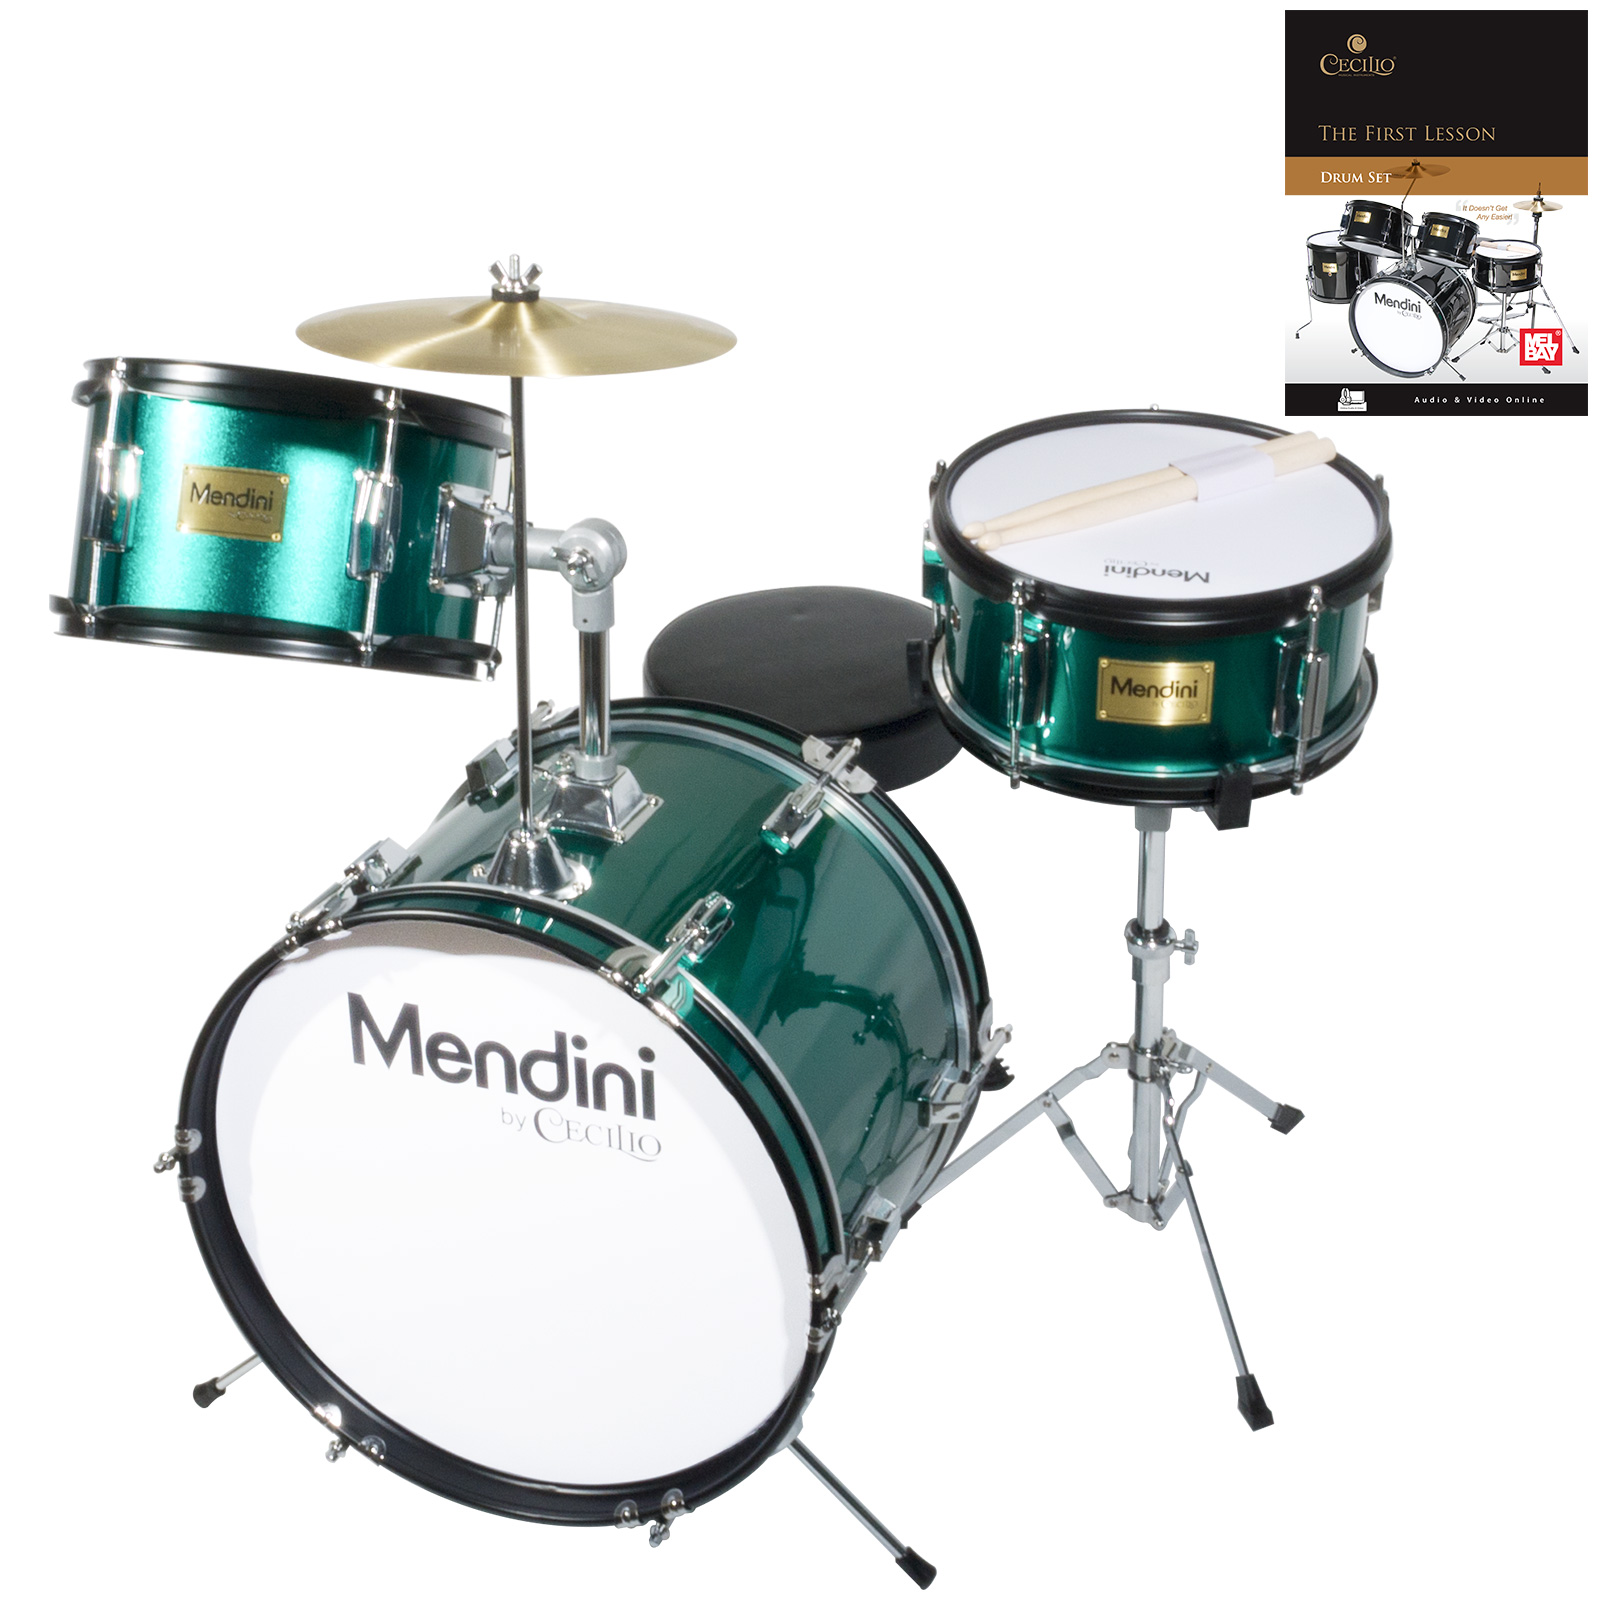 "Mendini by Cecilio 16"" 3-Piece Kids / Junior Drum Set with Adjustable Throne, Cymbal, Pedal, Drumsticks & Lesson Book, Metallic Green, MJDS-3-GN"